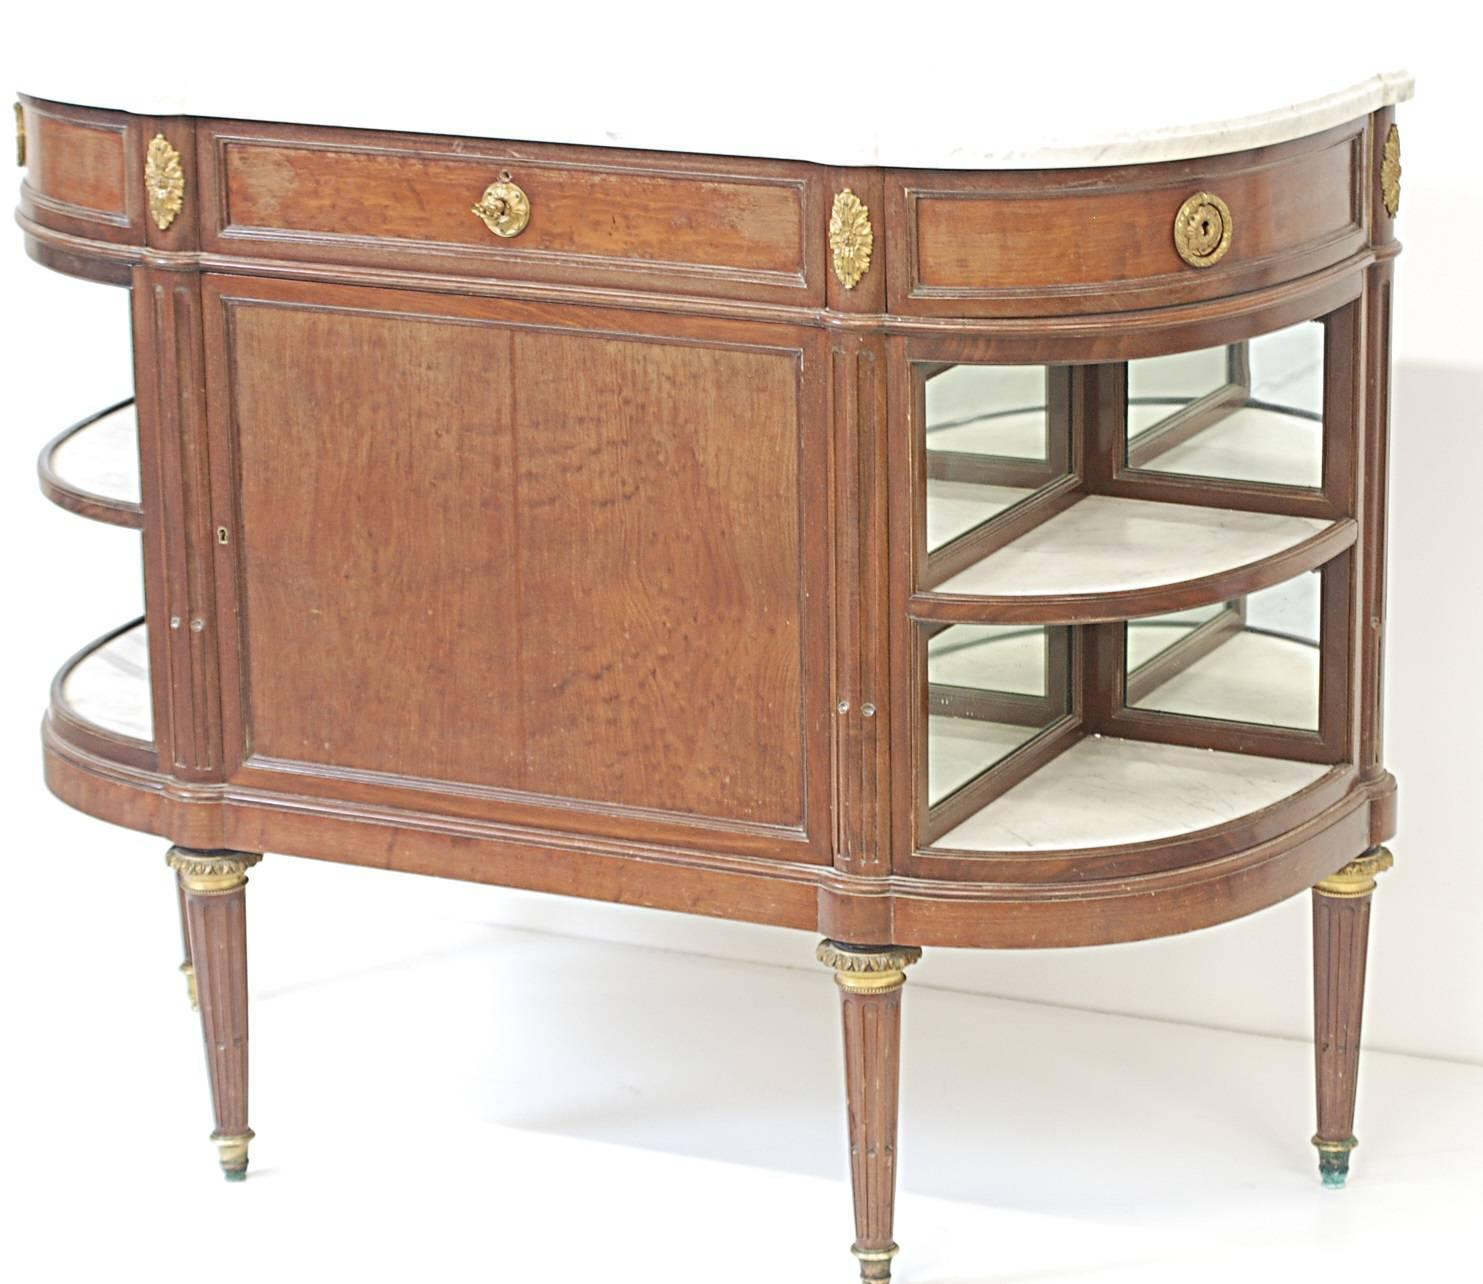 Marble top dressette by maison jansen at 1stdibs for Z furniture philadelphia